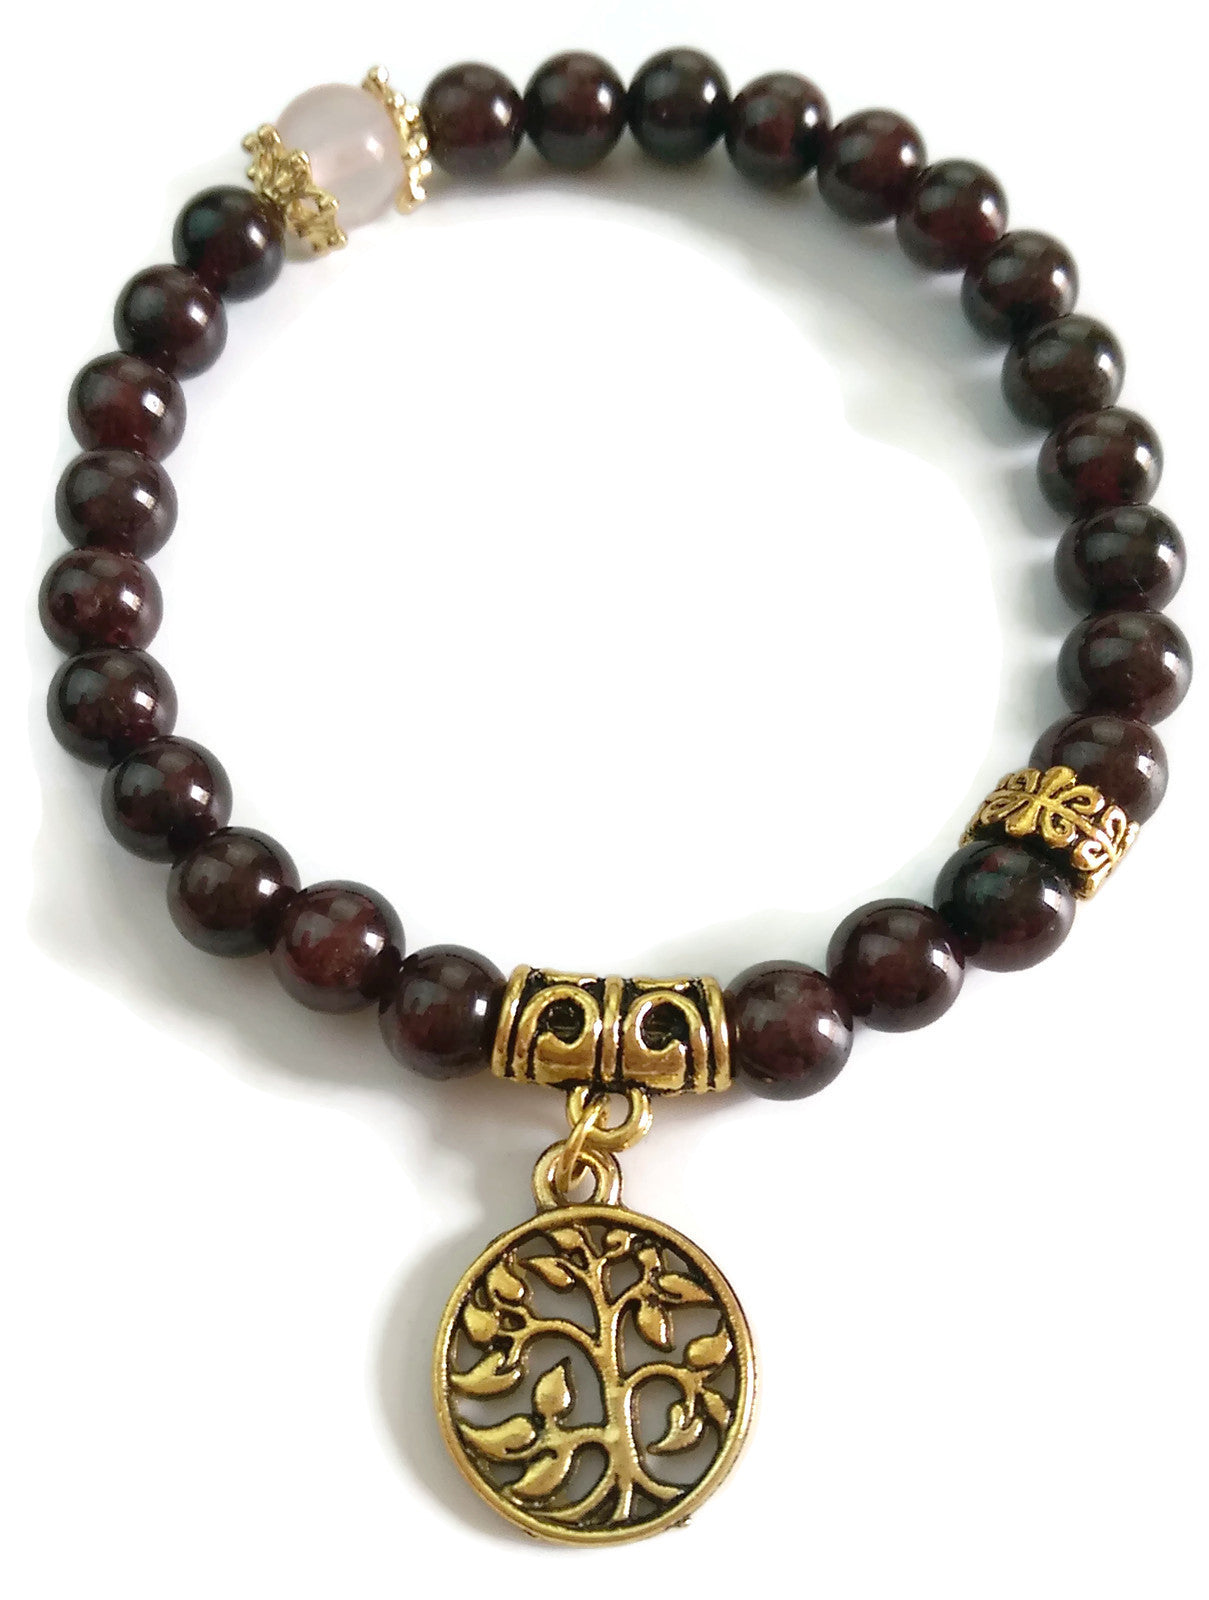 8mm Garnet Stone, Rose Quartz Crystal and Gold Tree of Life Charm Yoga Wrist Mala Stretch Bracelet | Root Base Chakra